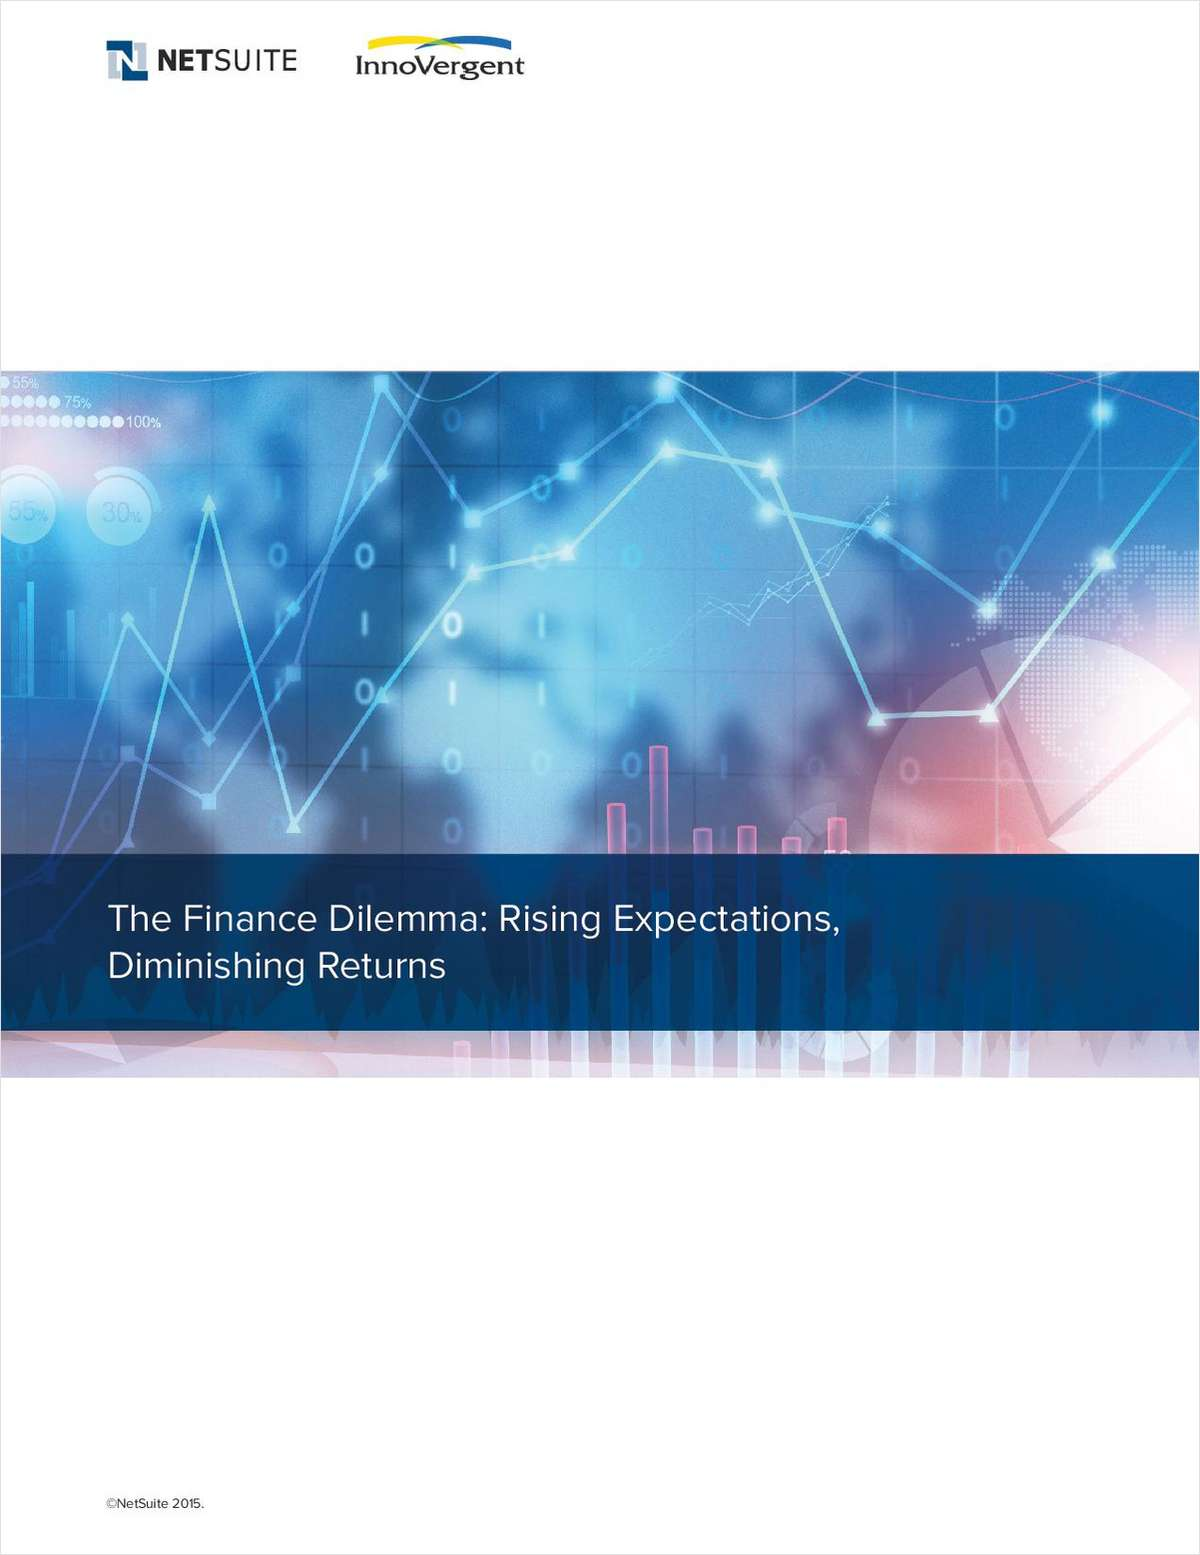 The Finance Dilemma: Rising Expectations, Diminishing Returns